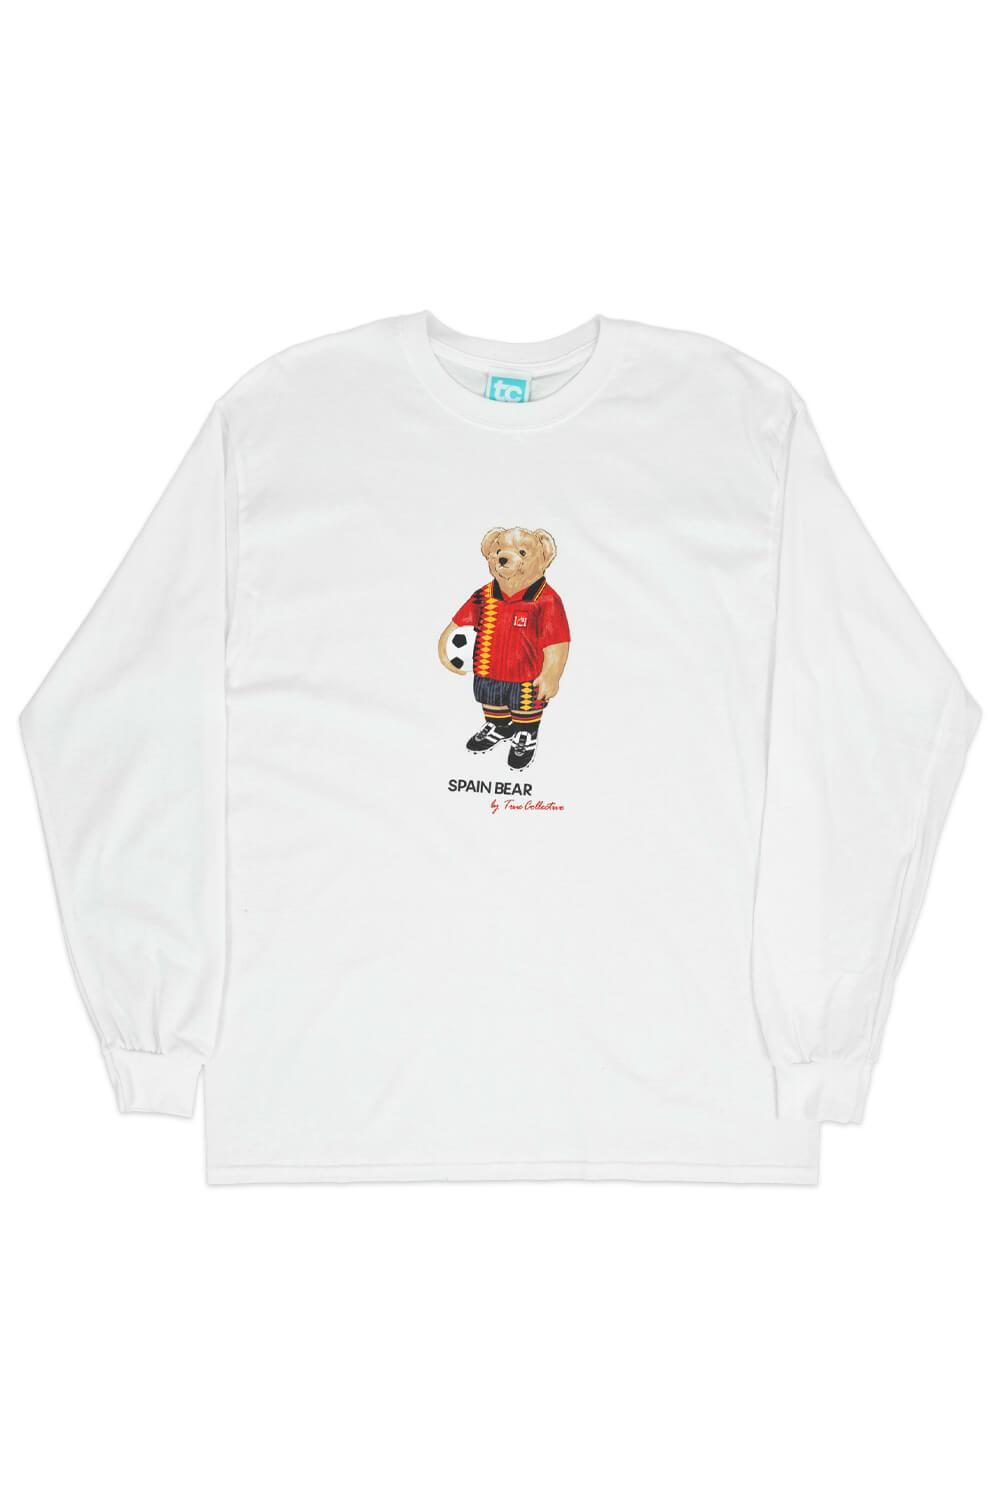 Spain Bear Long Sleeve T-shirt White